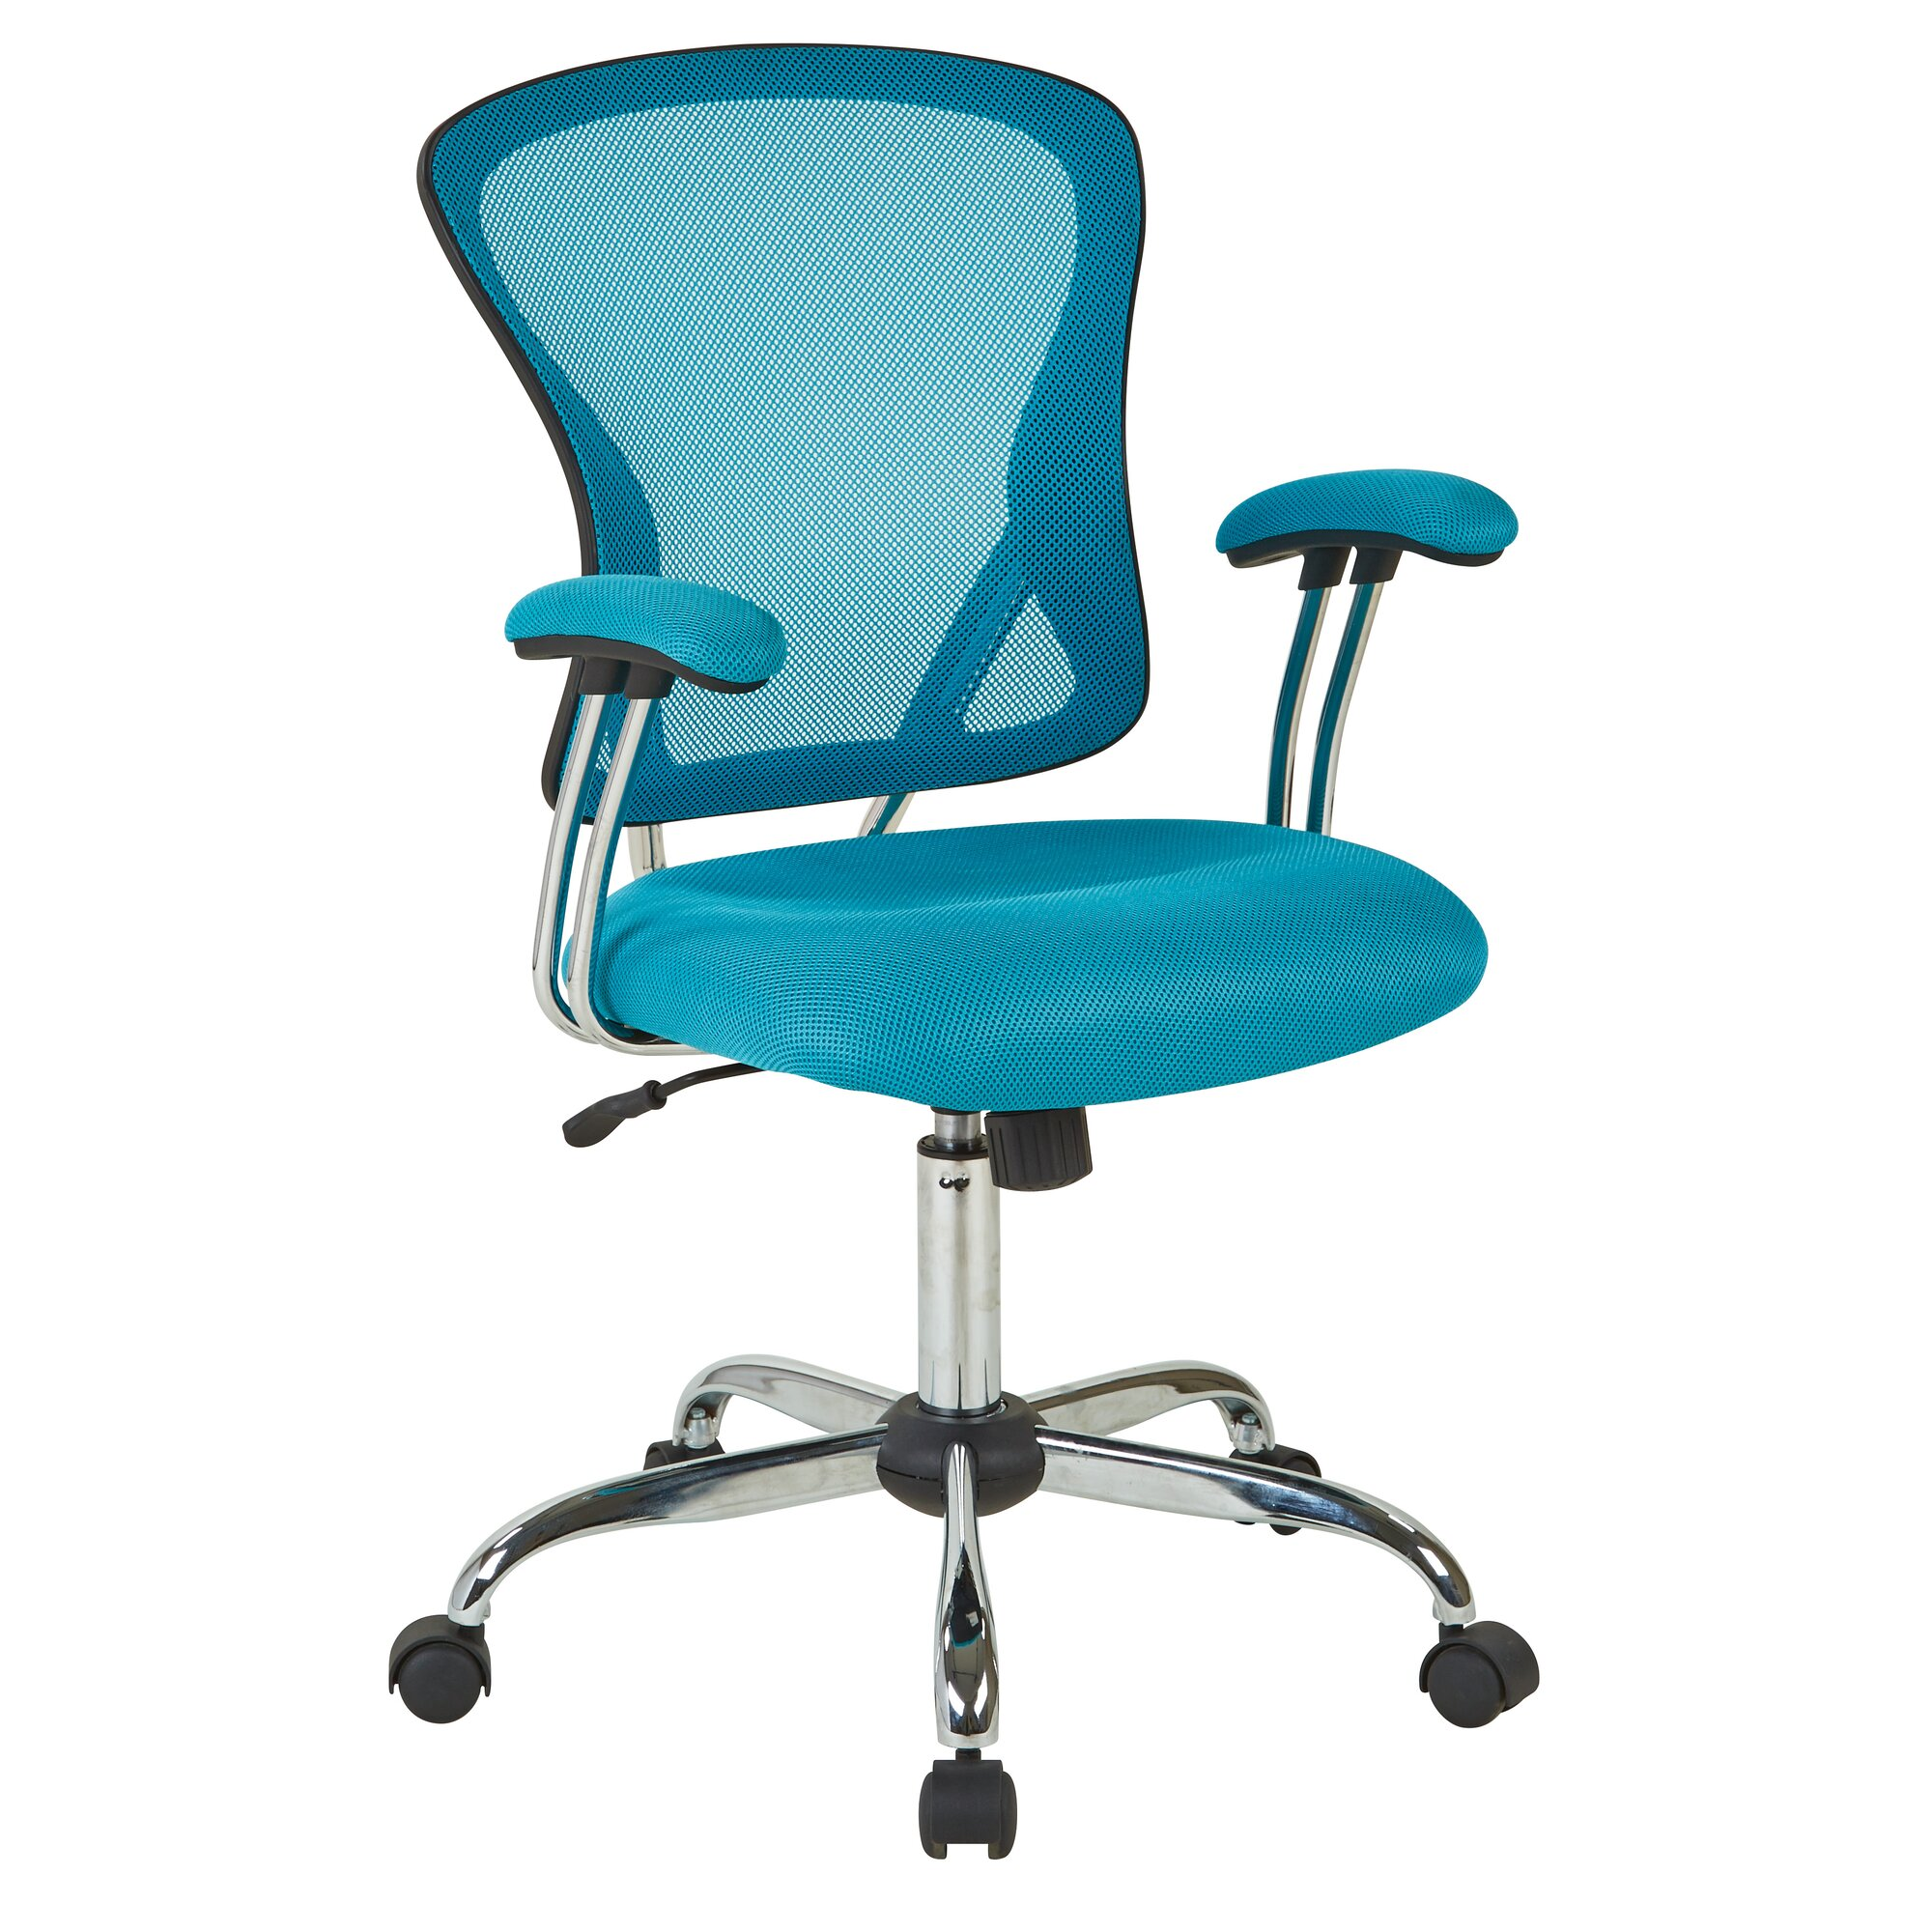 Modern leather office chair - Modern Leather Office Chair 25